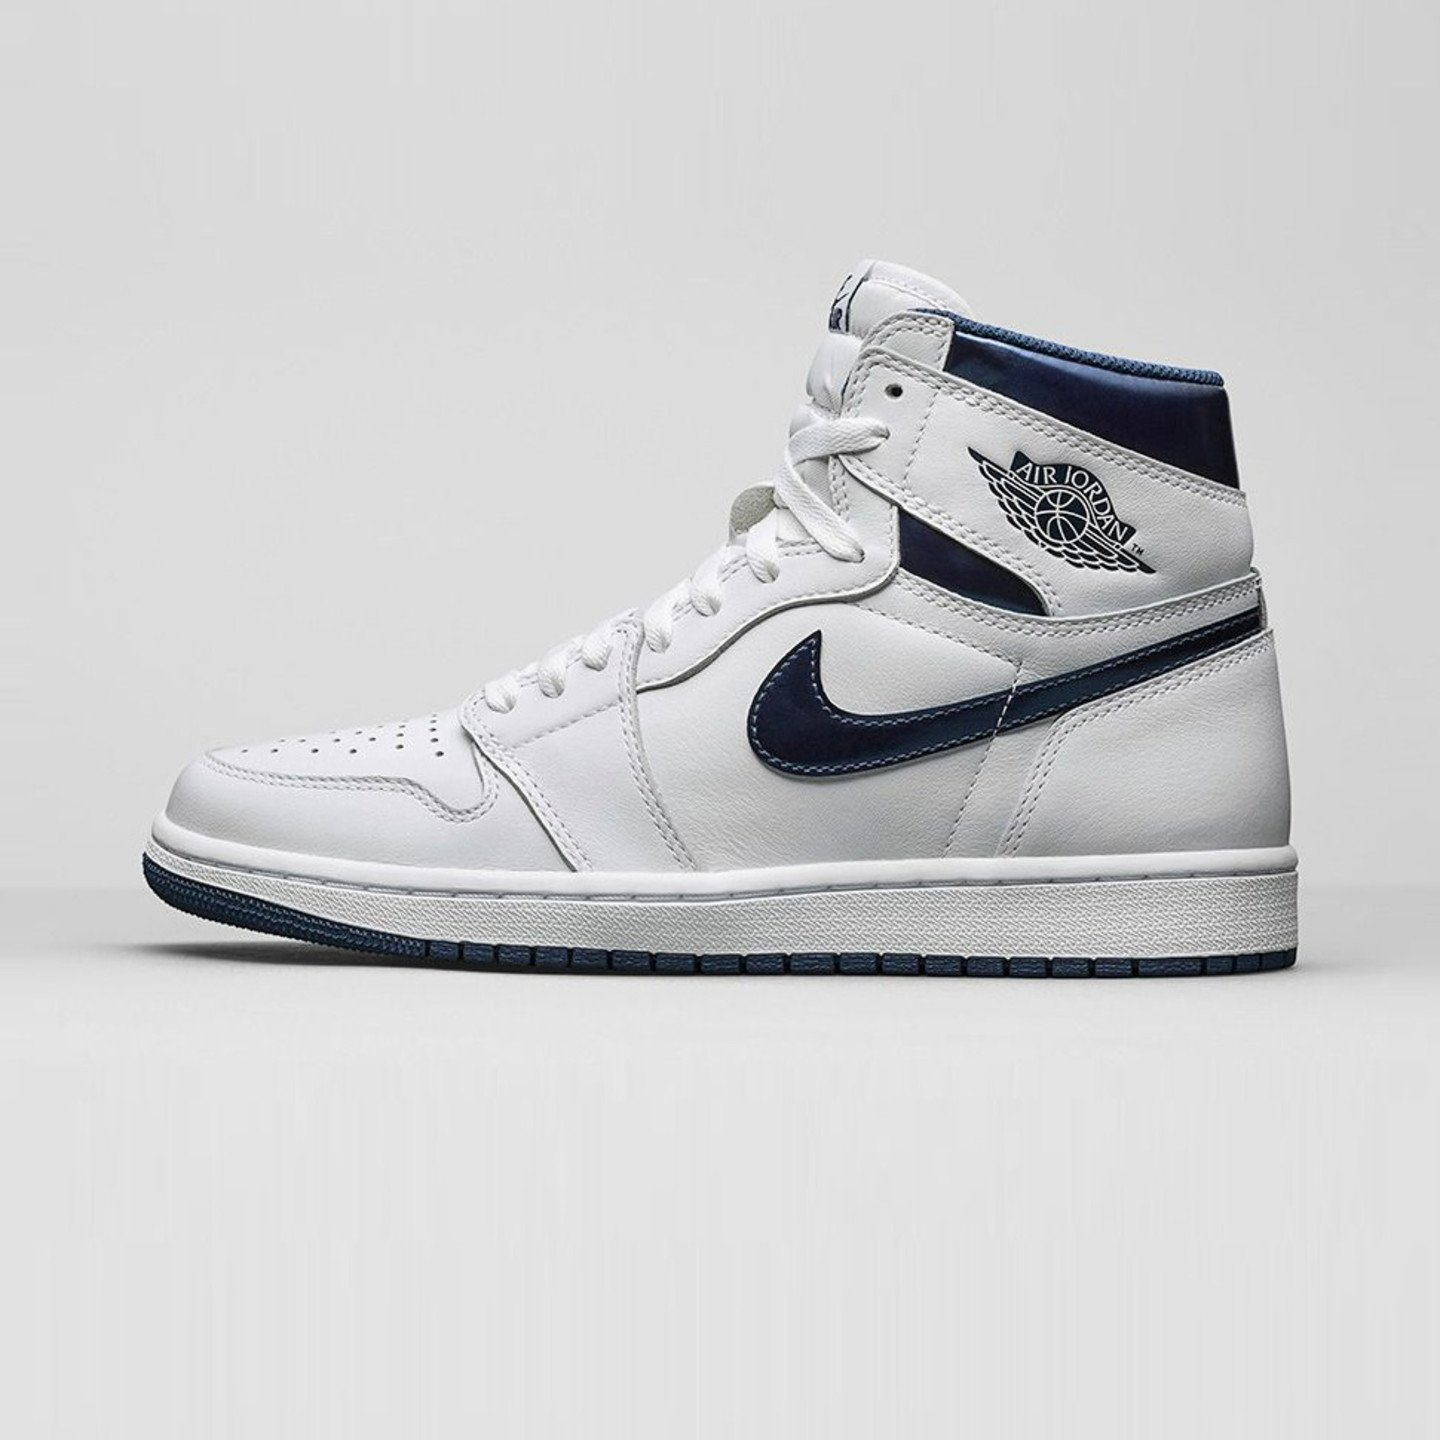 Jordan Air Jordan 1 Retro High OG 'Metallic Navy' White / Midnight Navy 555088-106-43